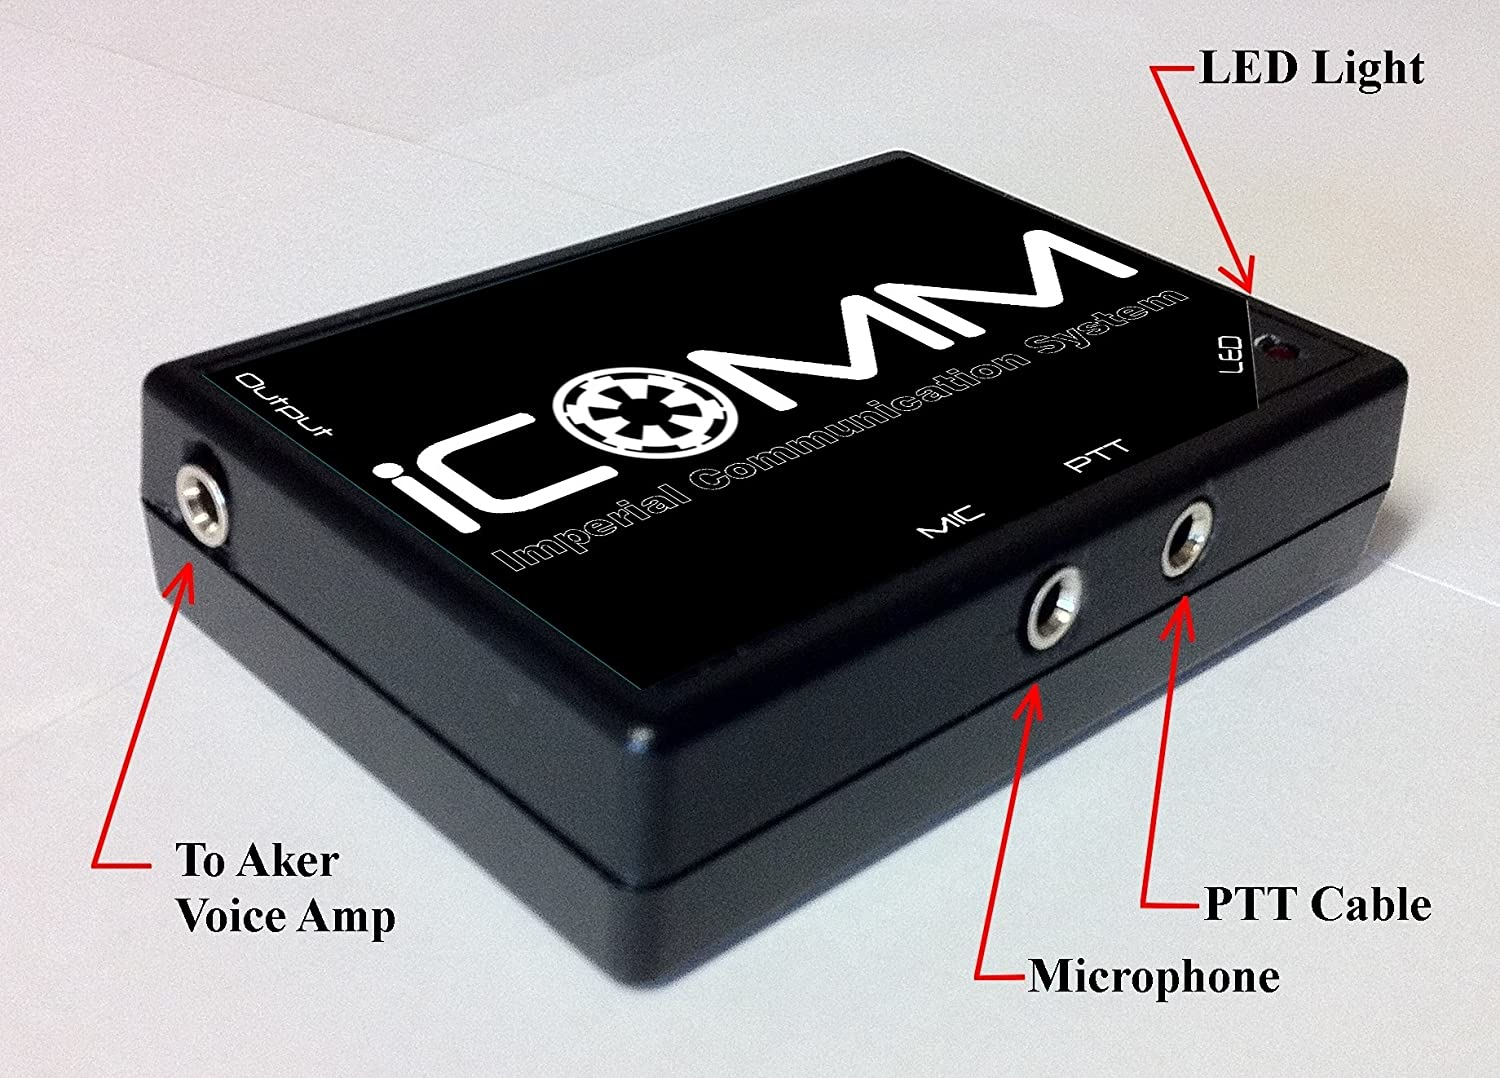 Voicebooster Icomm Imperial Communication System Circuit Diagram Superhero Power Plant Adafruit Learning Static Burst Effect Like Stormtrooper Toys Games